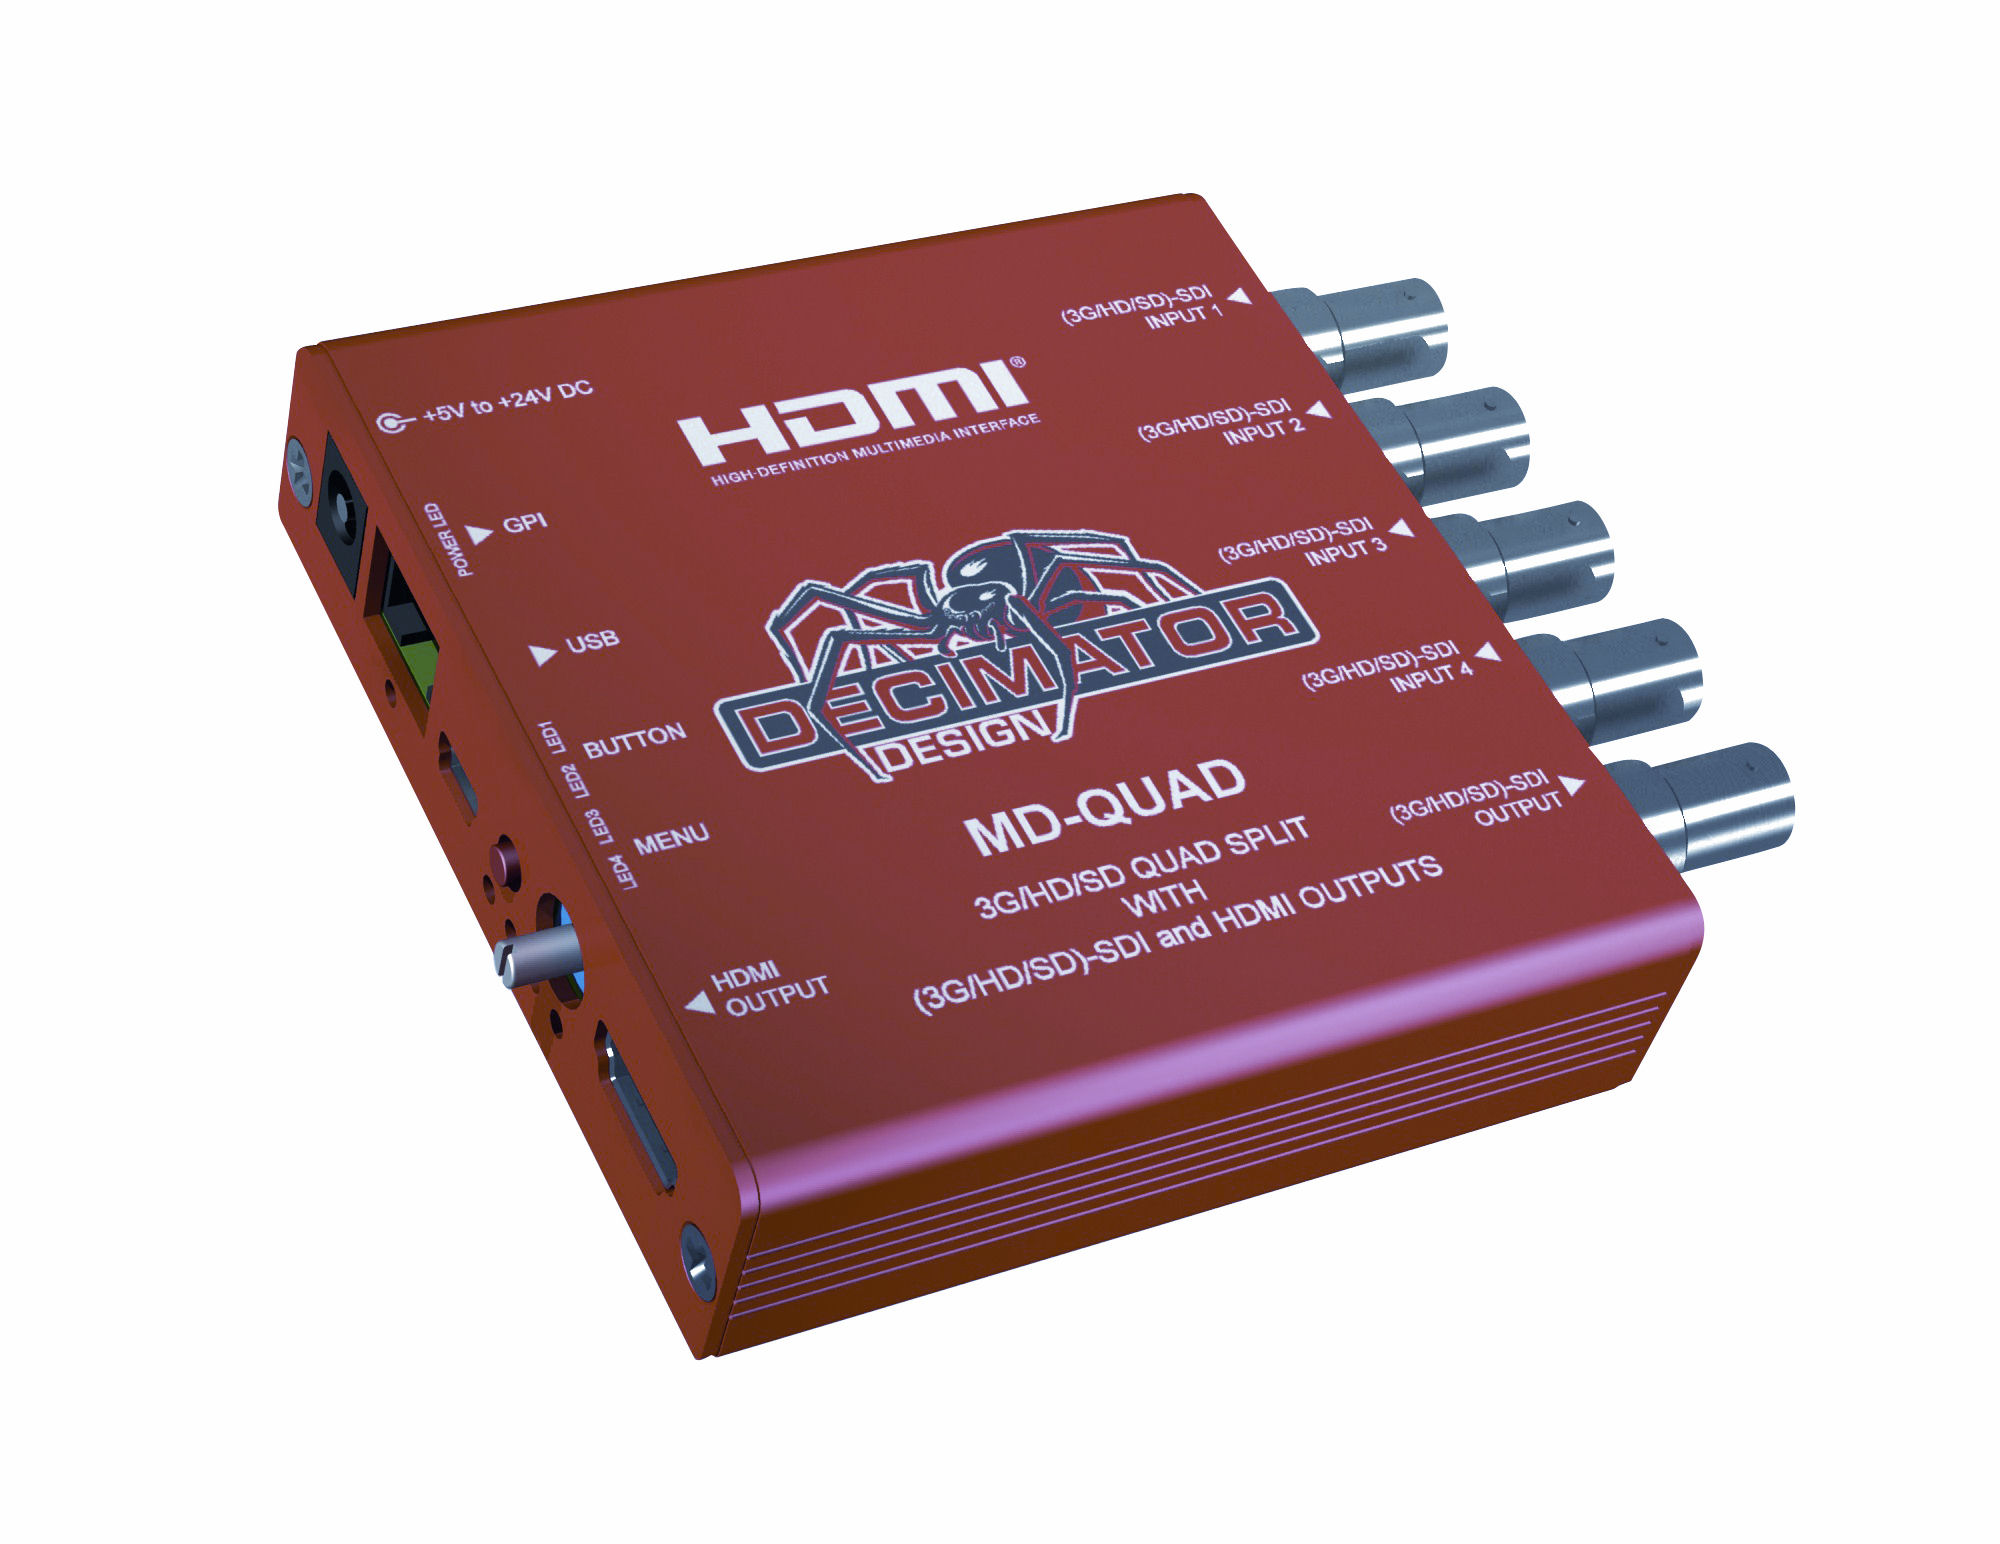 3G/HD/SD-SDI Quad Split